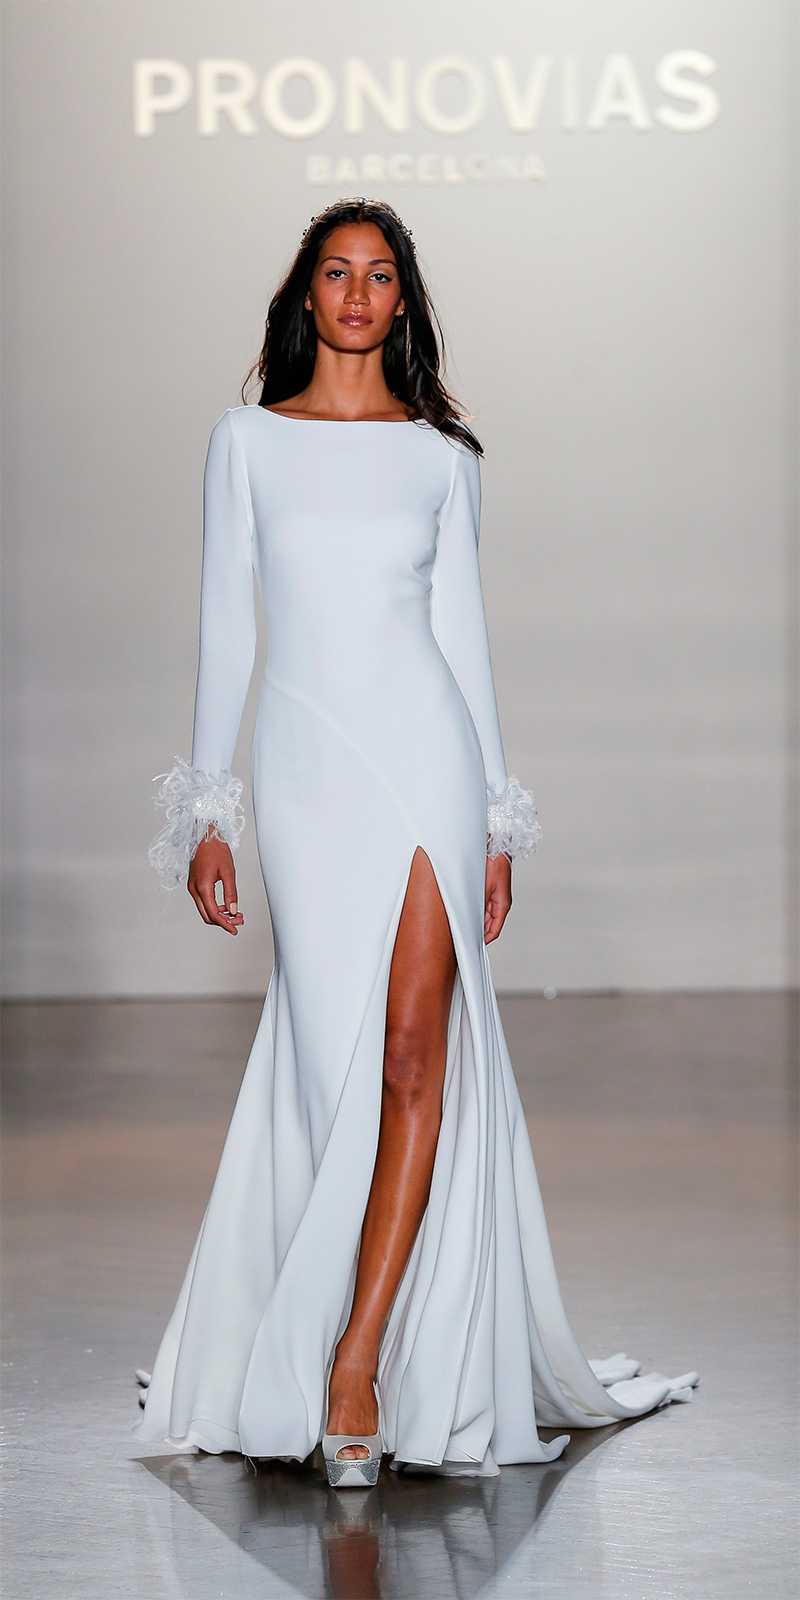 pronovias-ny-fashion-show_nuria